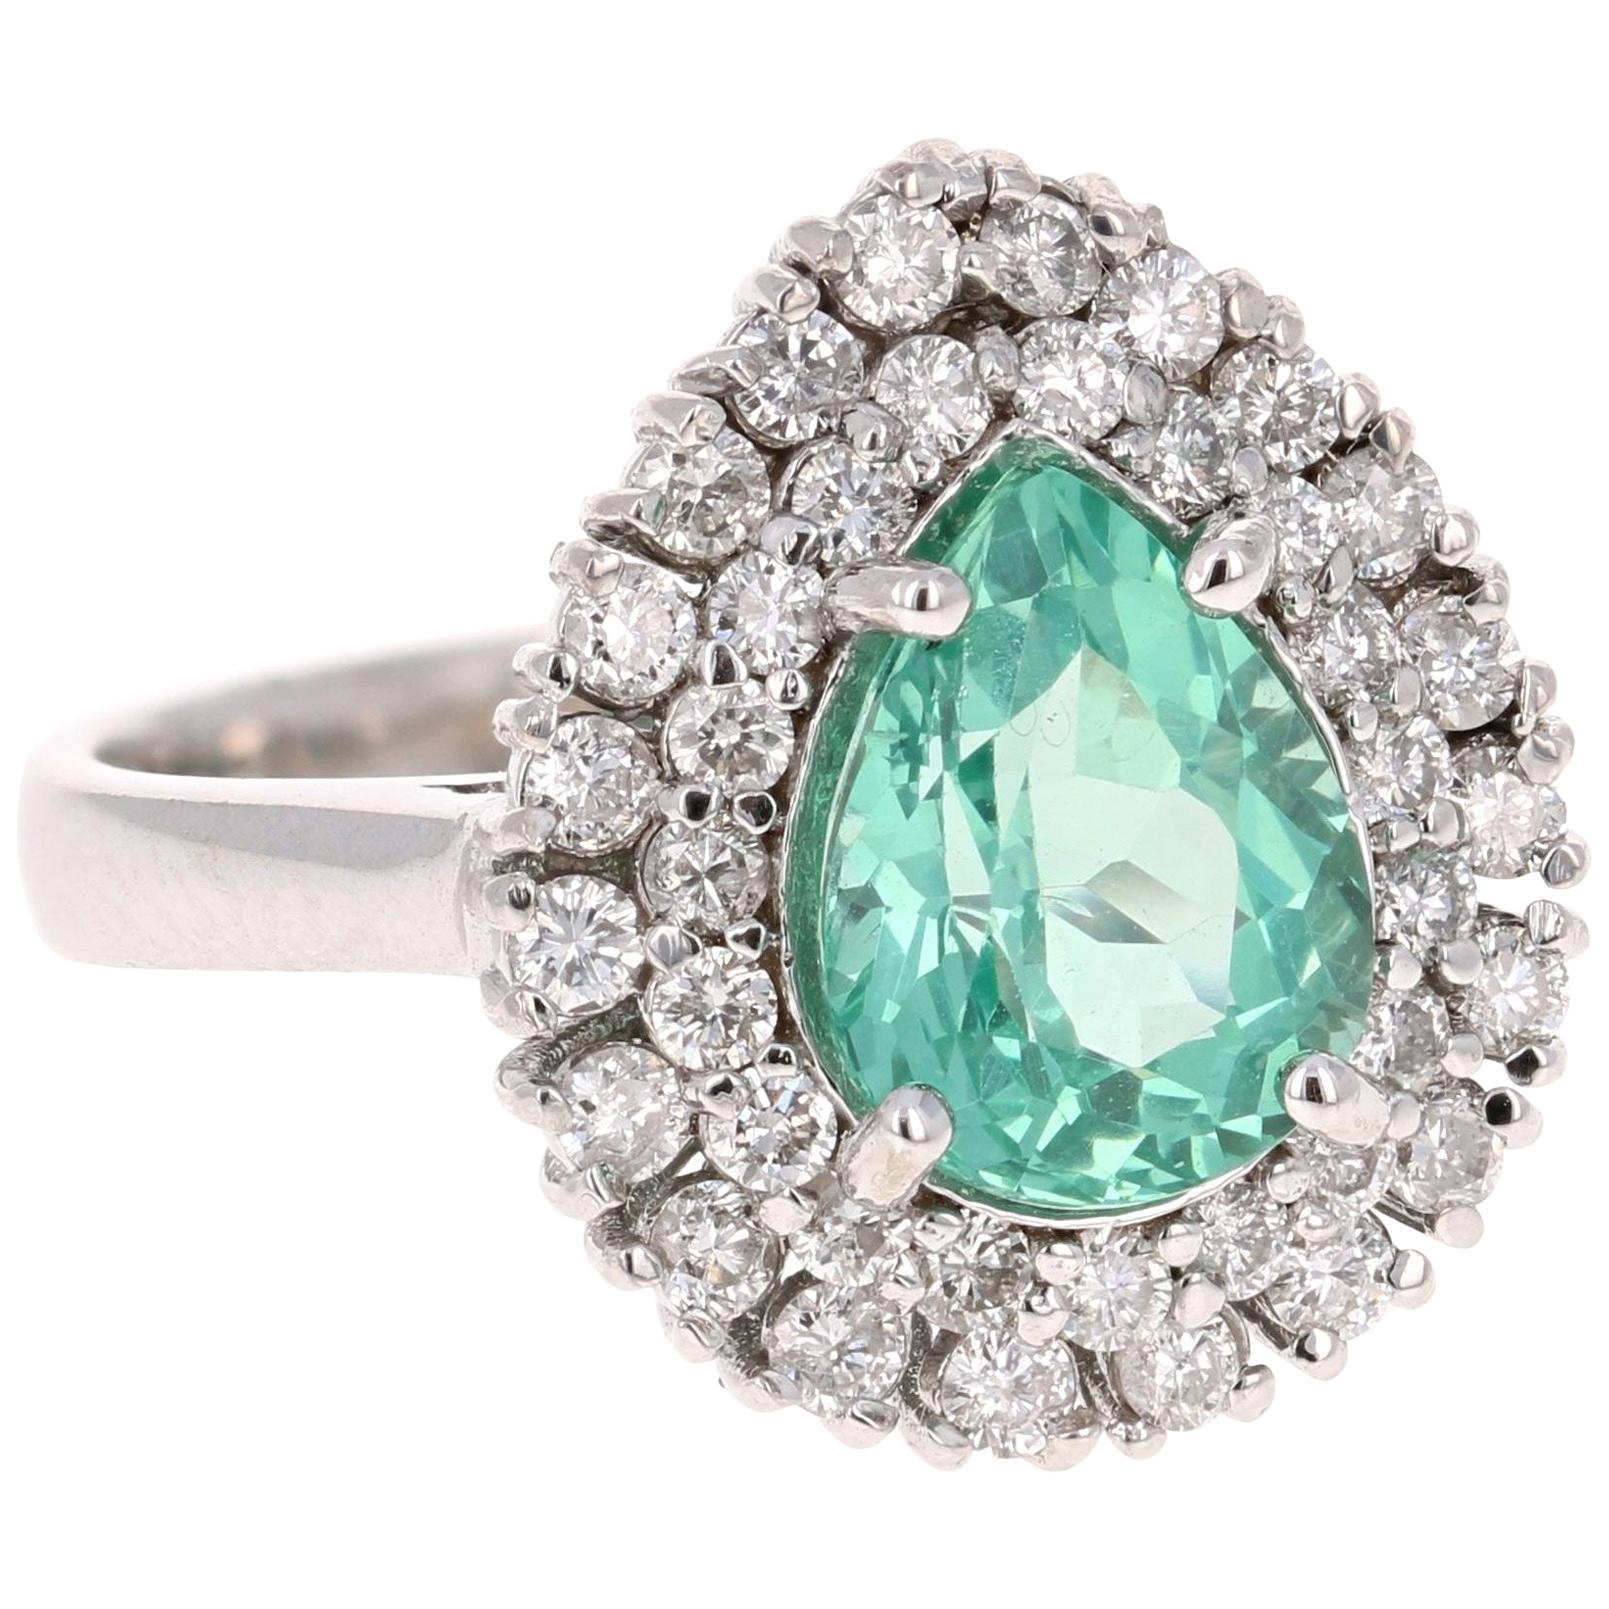 3.27 Carat Apatite Diamond 14K White Gold Cocktail Ring